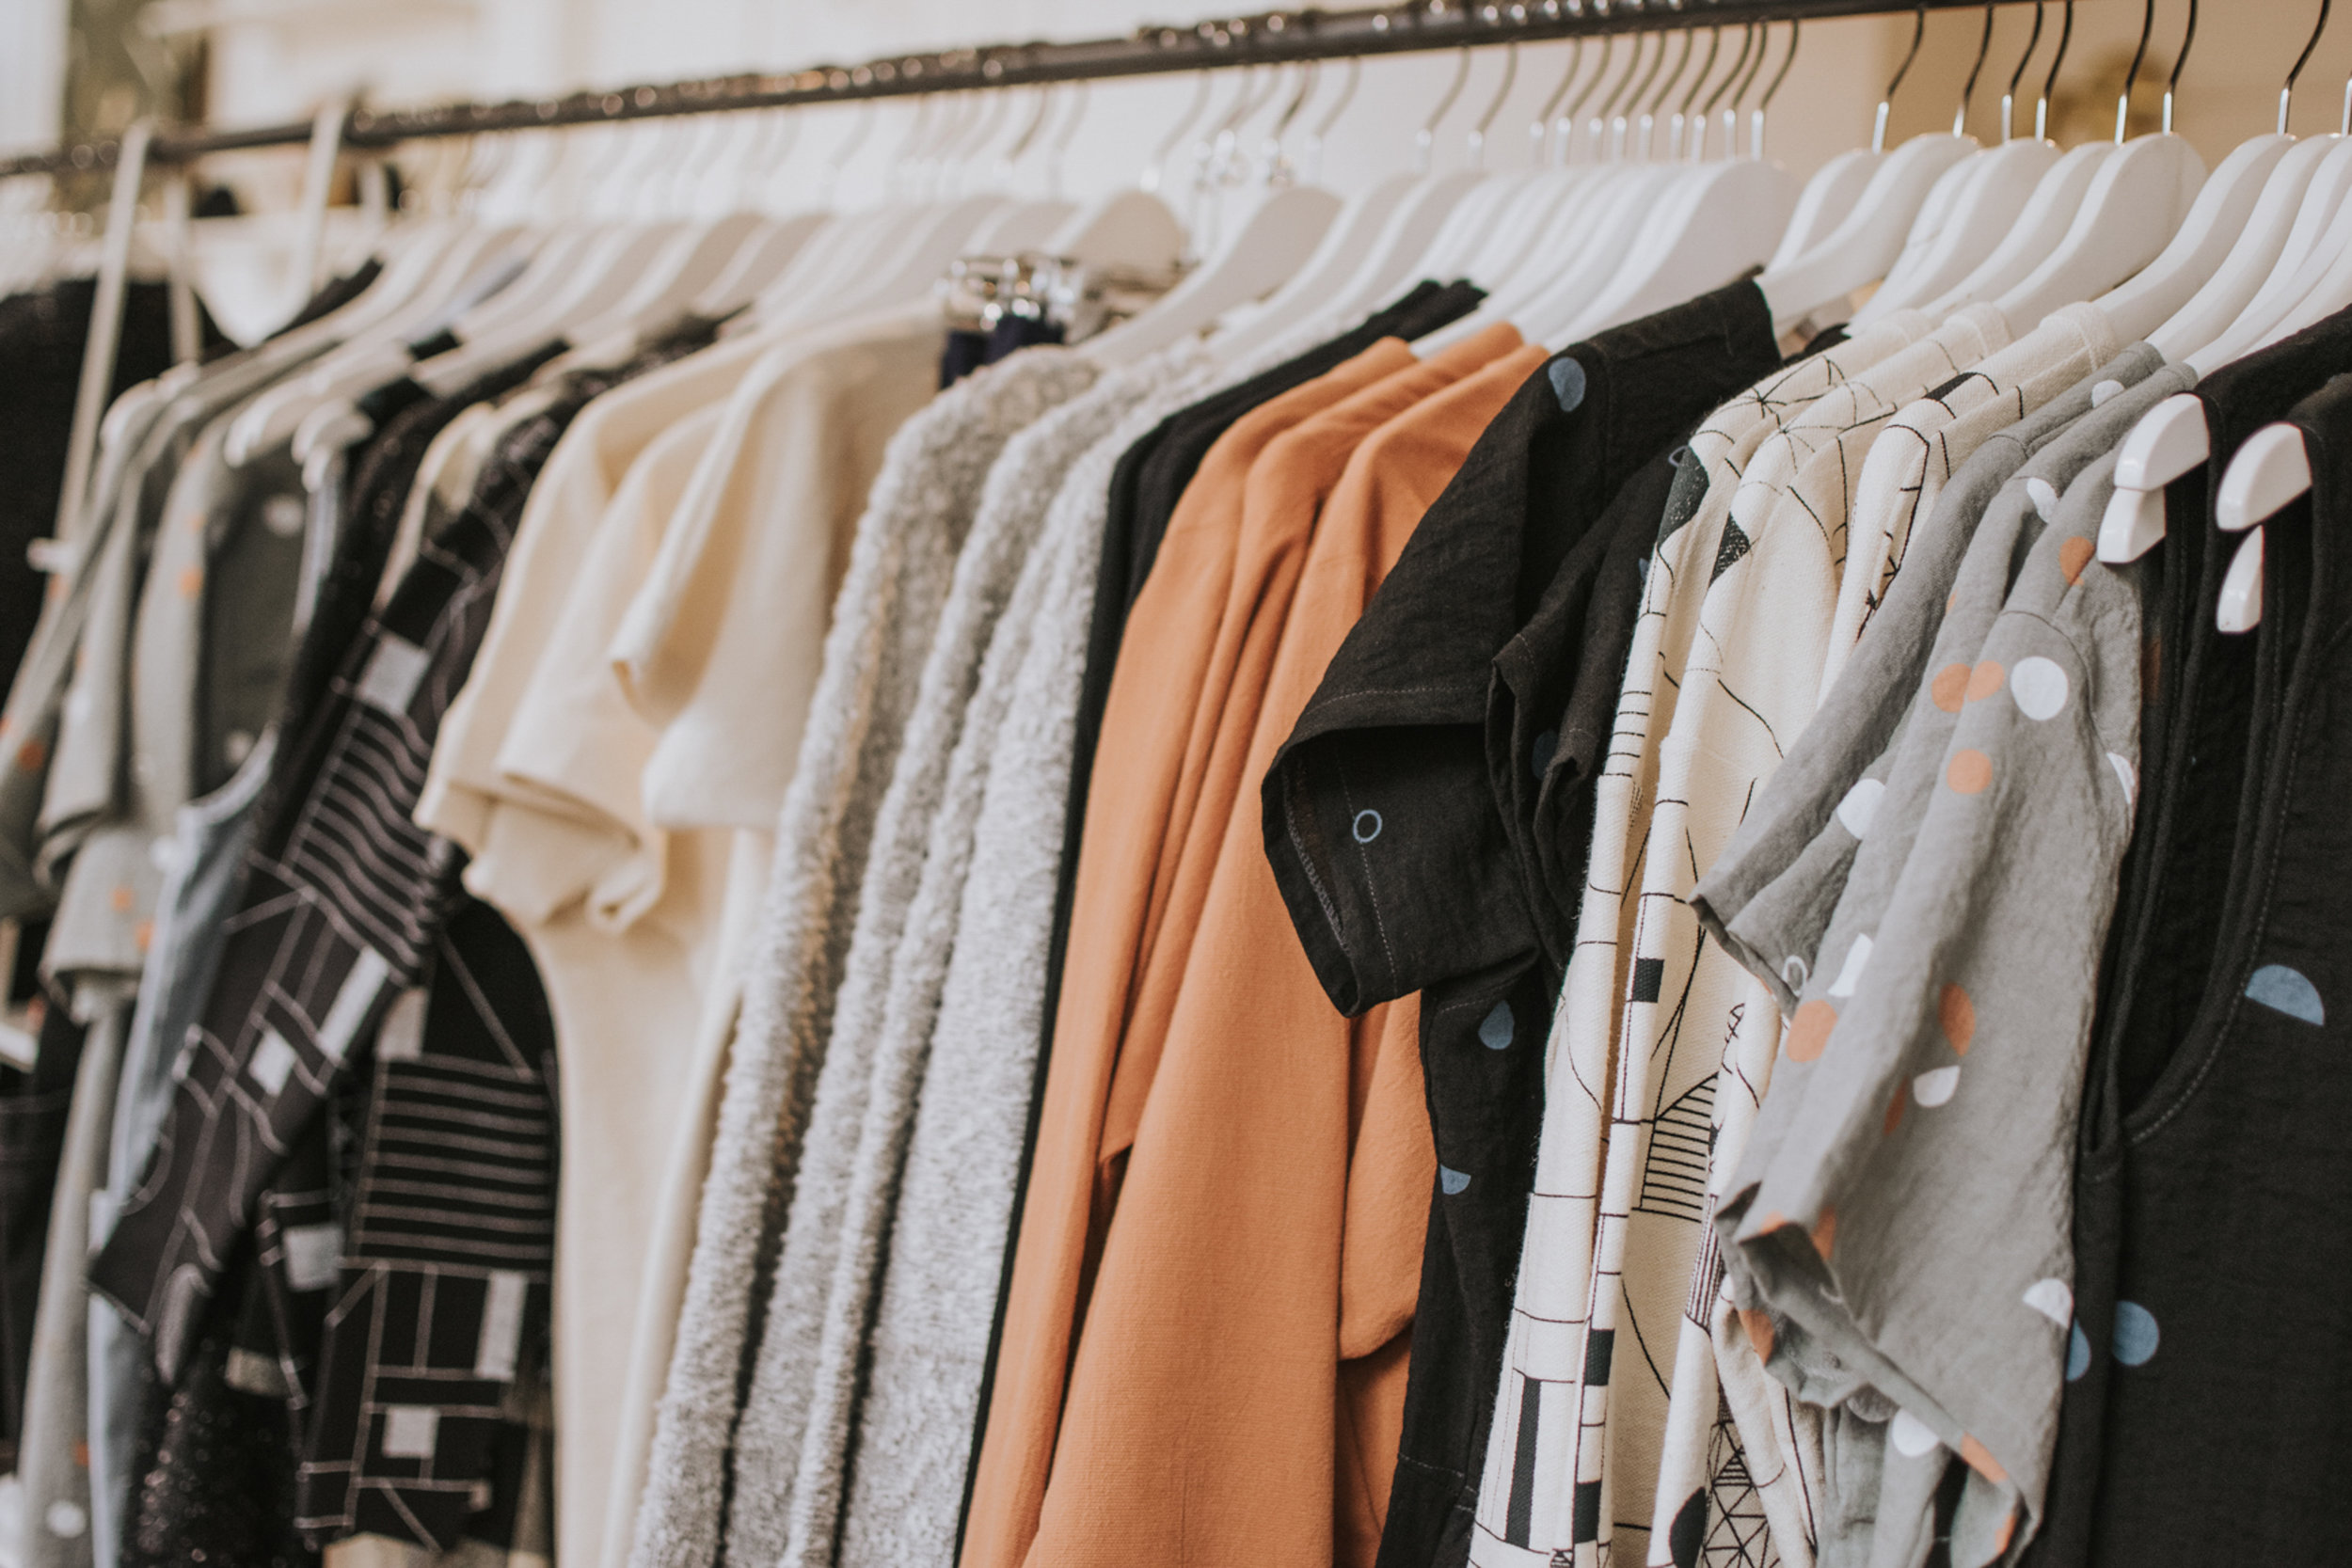 2. Could you use some help decluttering? -